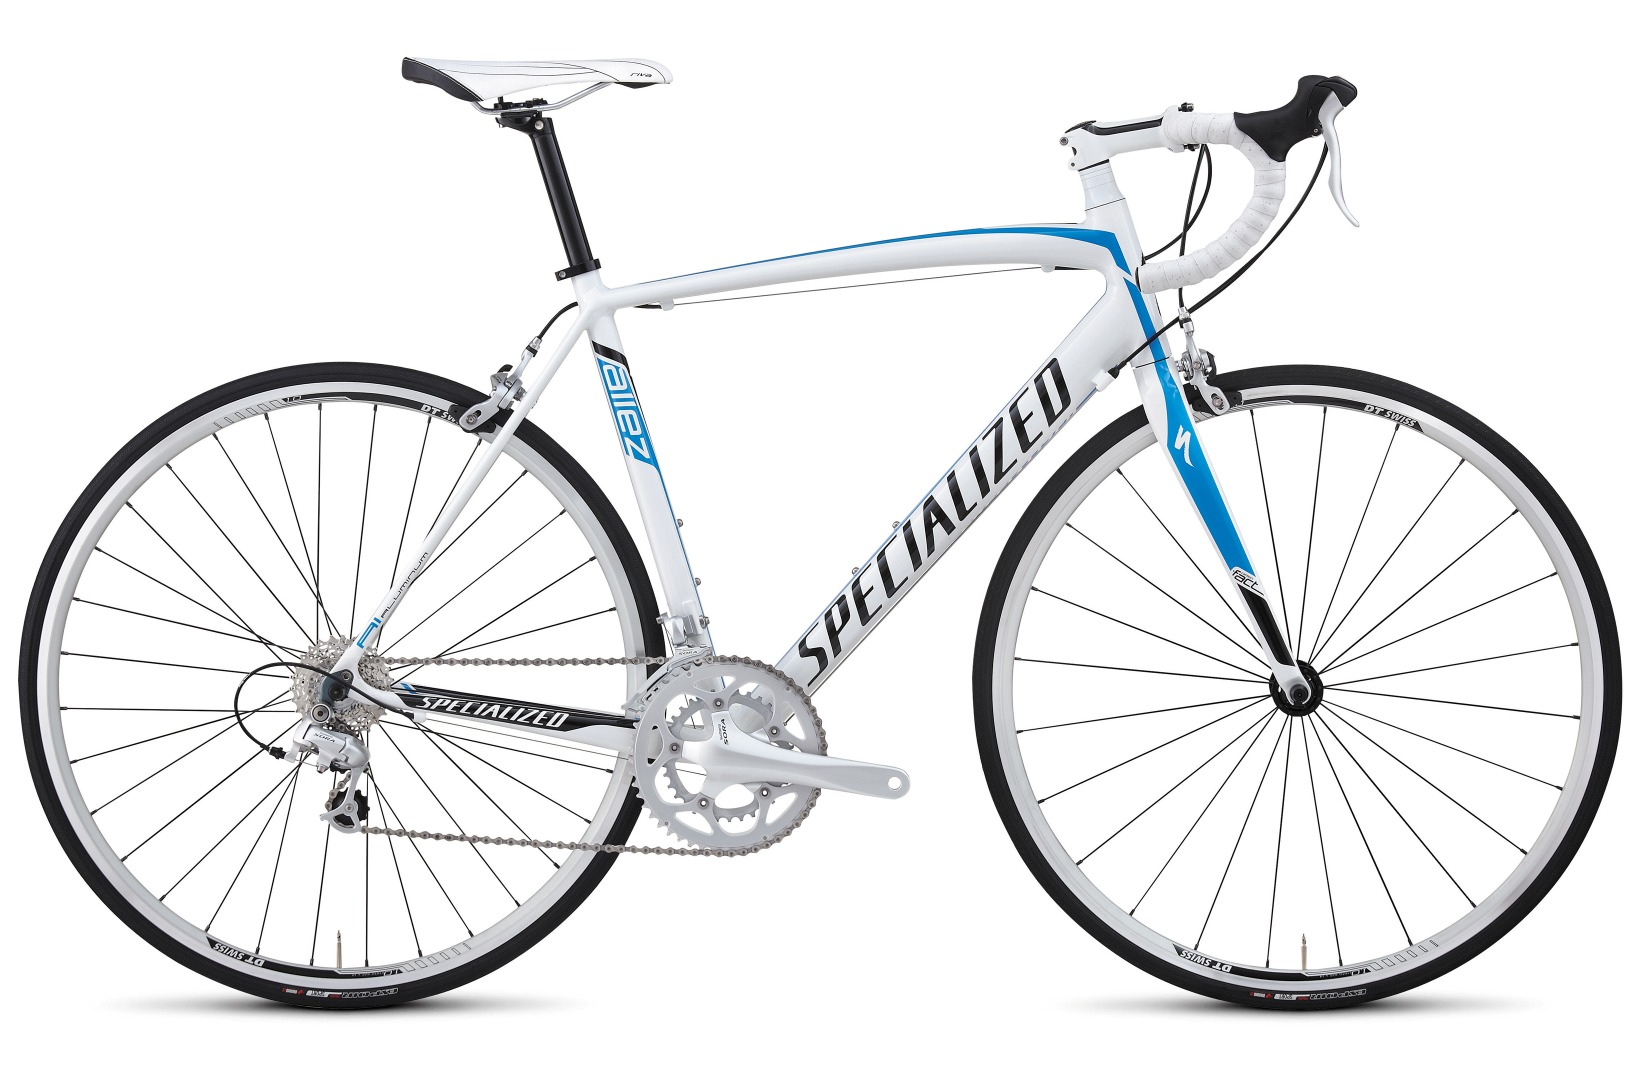 Stolen Specialized Allez